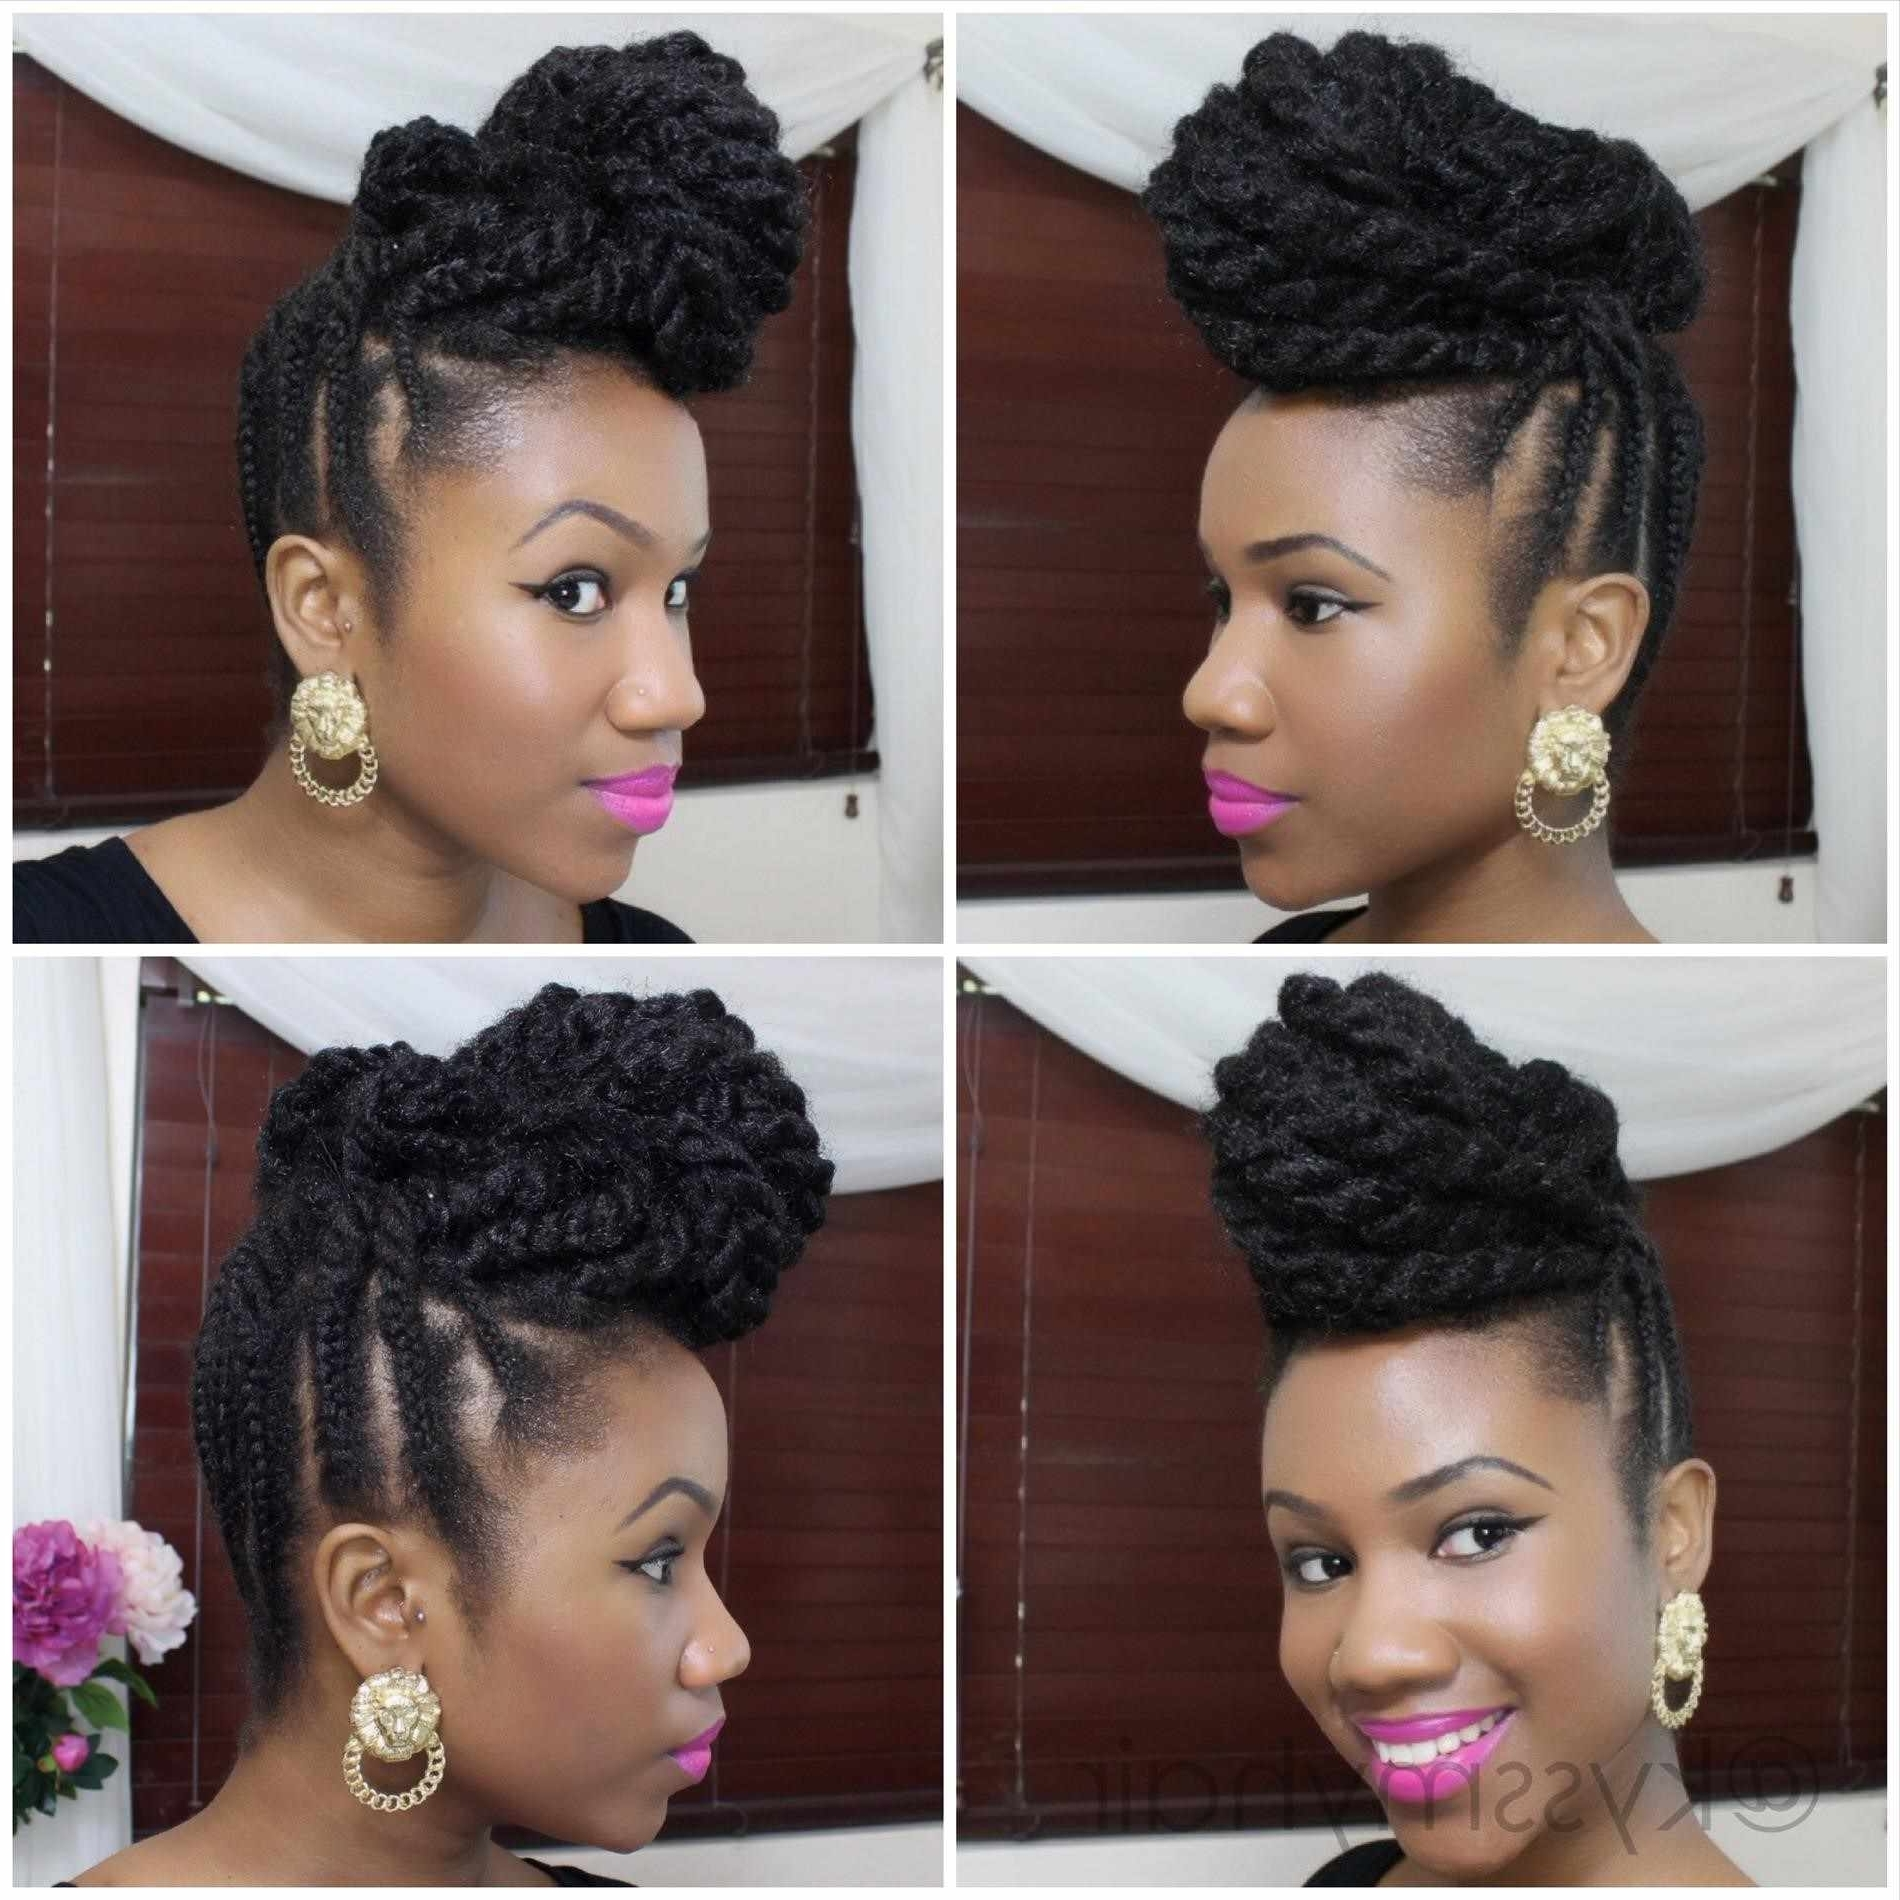 A Natural Braids African Braids Hairstyles Updo 2016 Hairstyles With Intended For Braided Updo Hairstyles With Extensions (View 3 of 15)